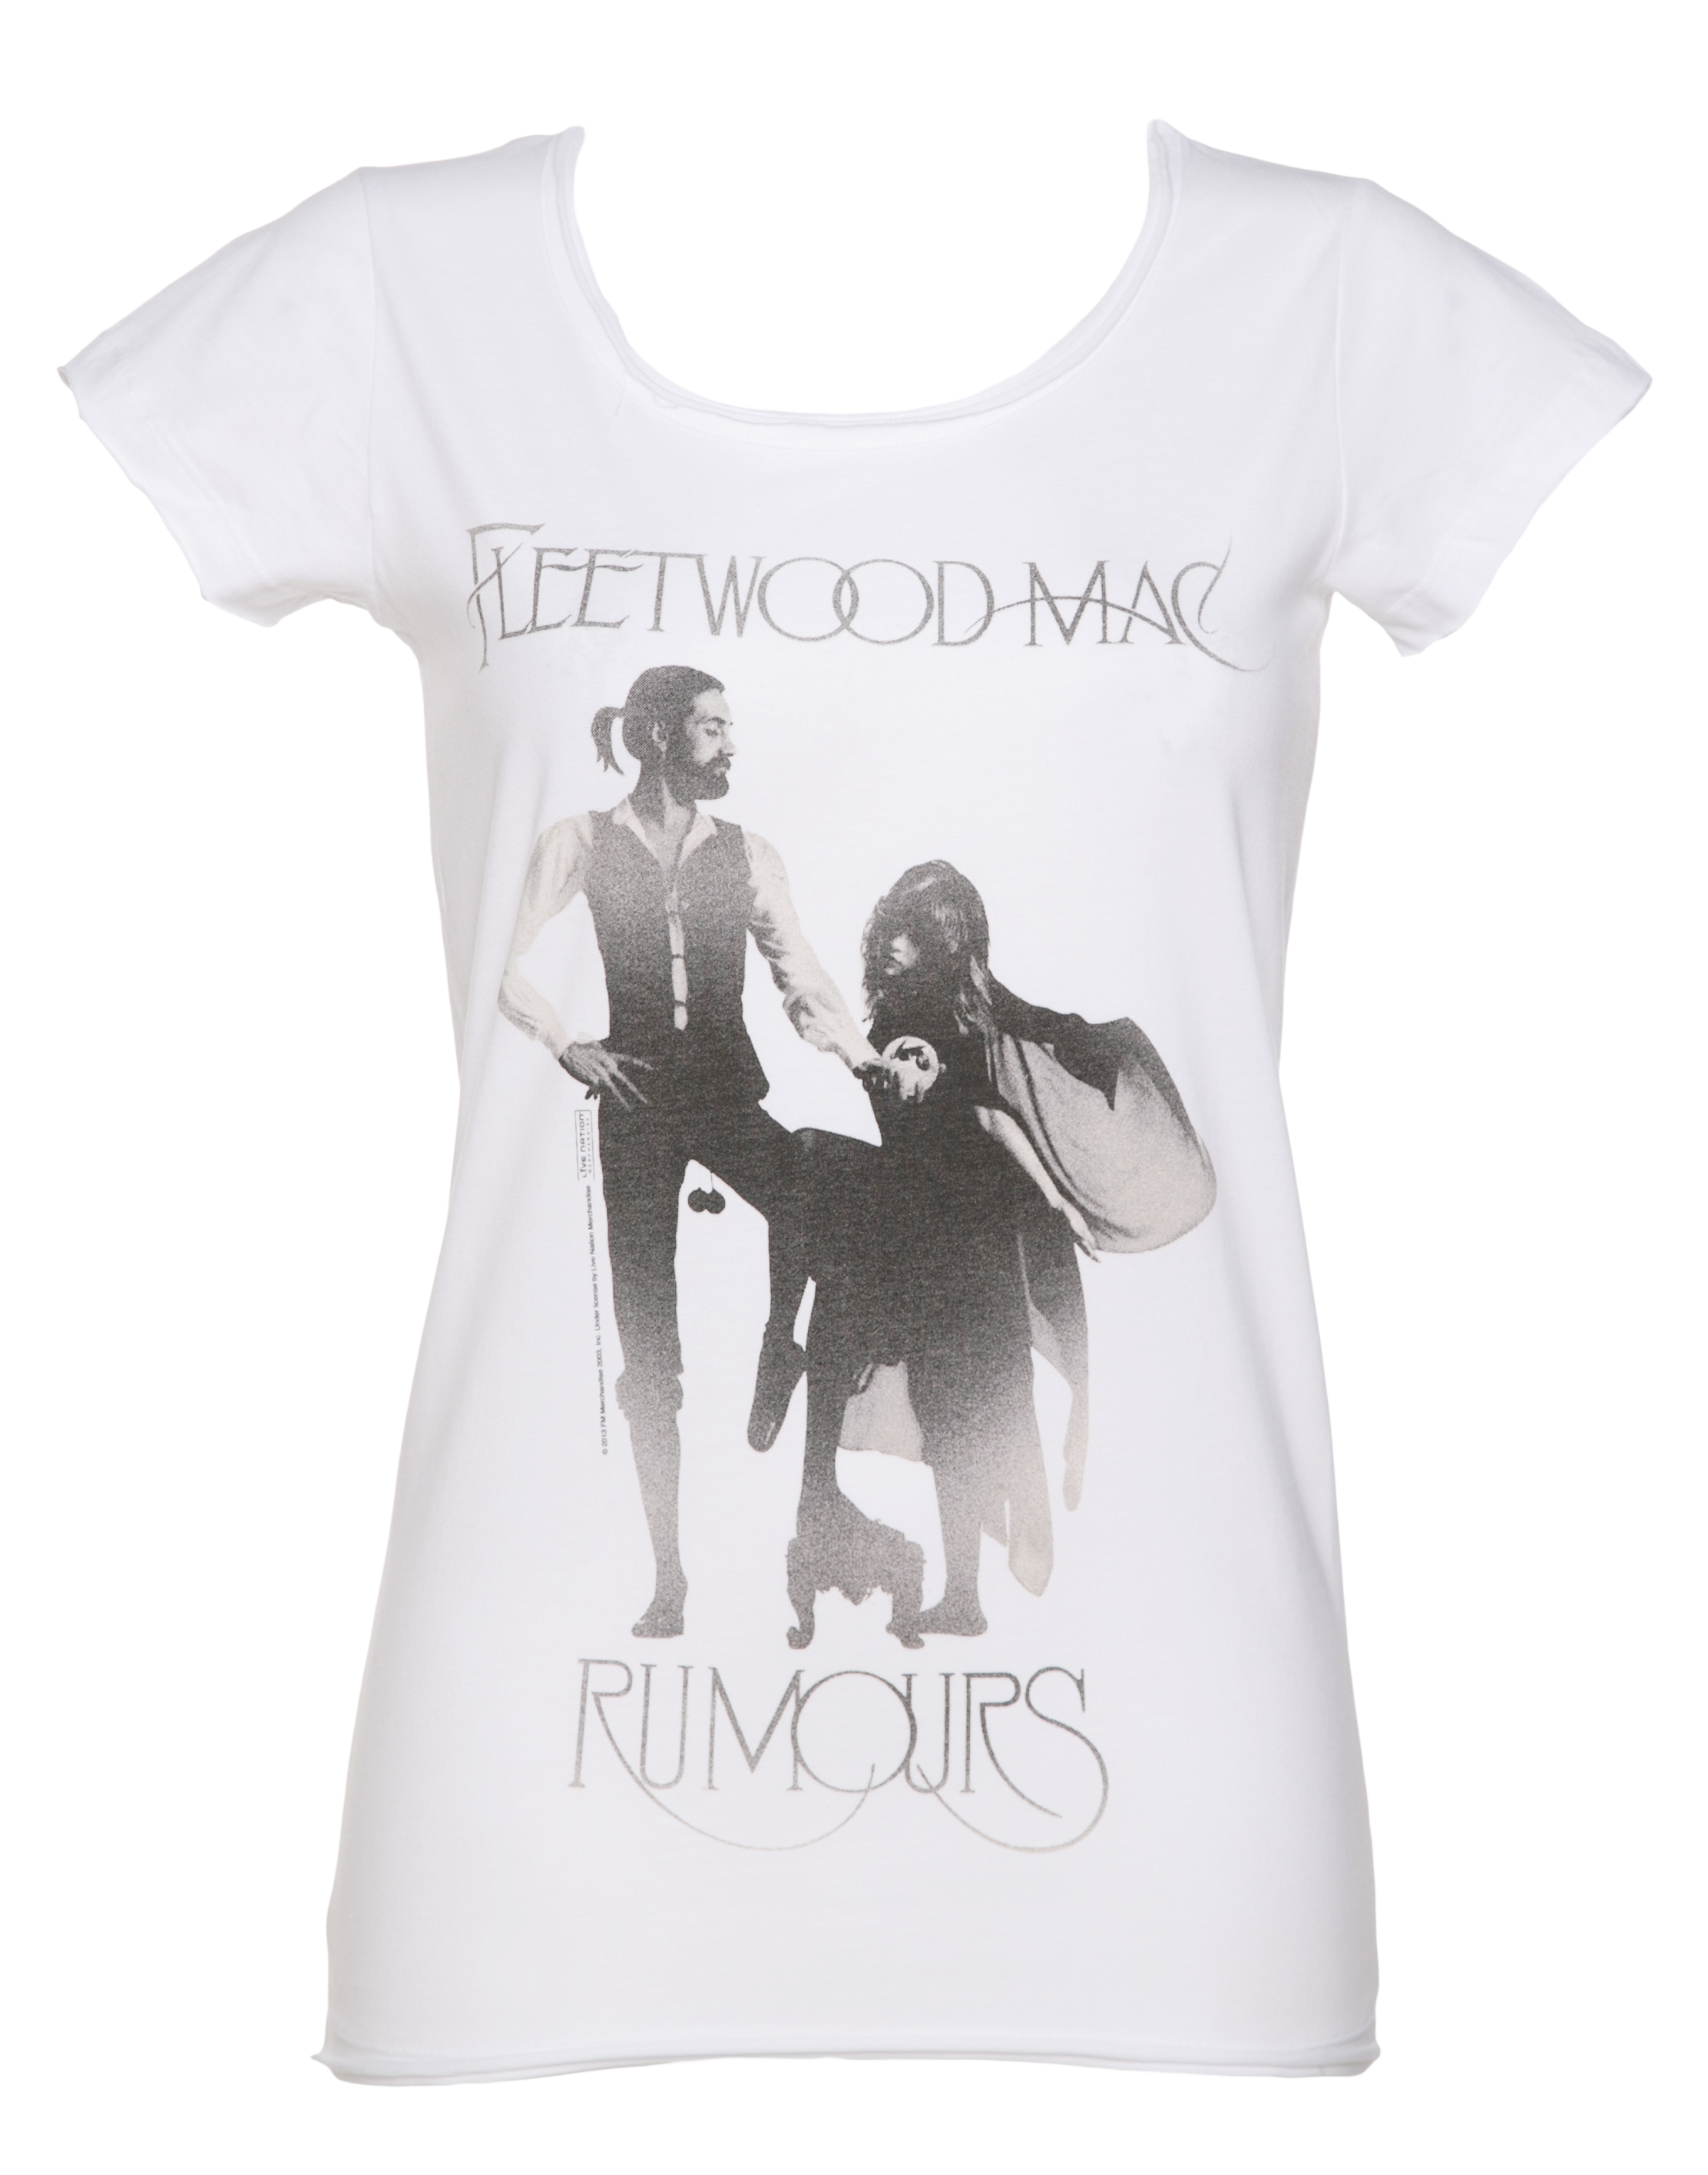 Women 39 s white fleetwood mac rumours t shirt from amplified for Apple shirt screen printing